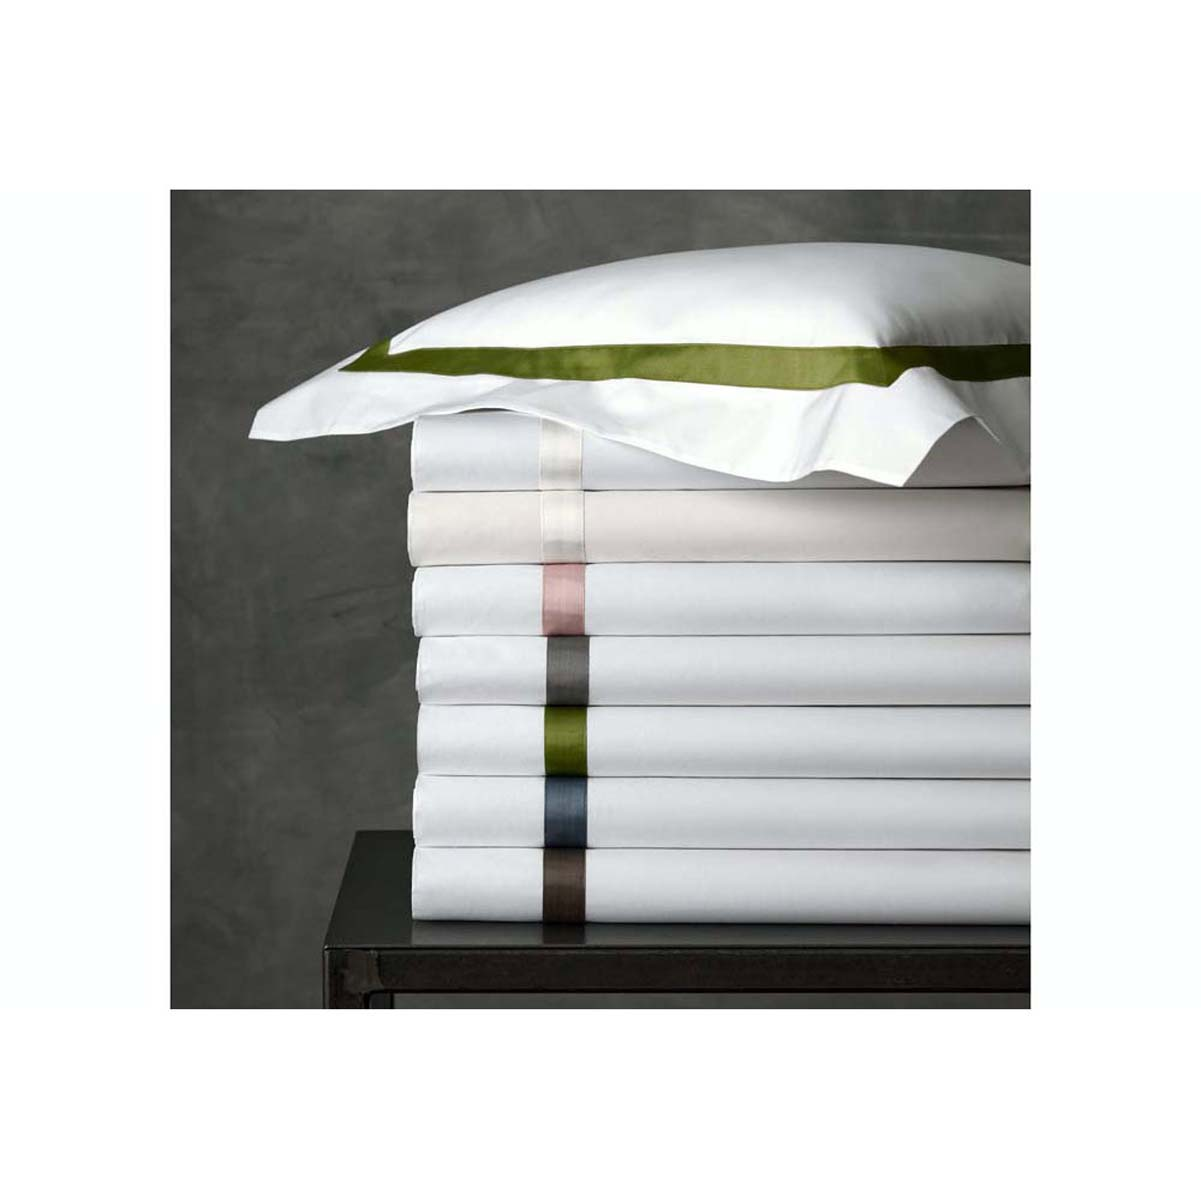 Luxurious Bed Linens Part - 42: Lowell Luxury Bed Linens